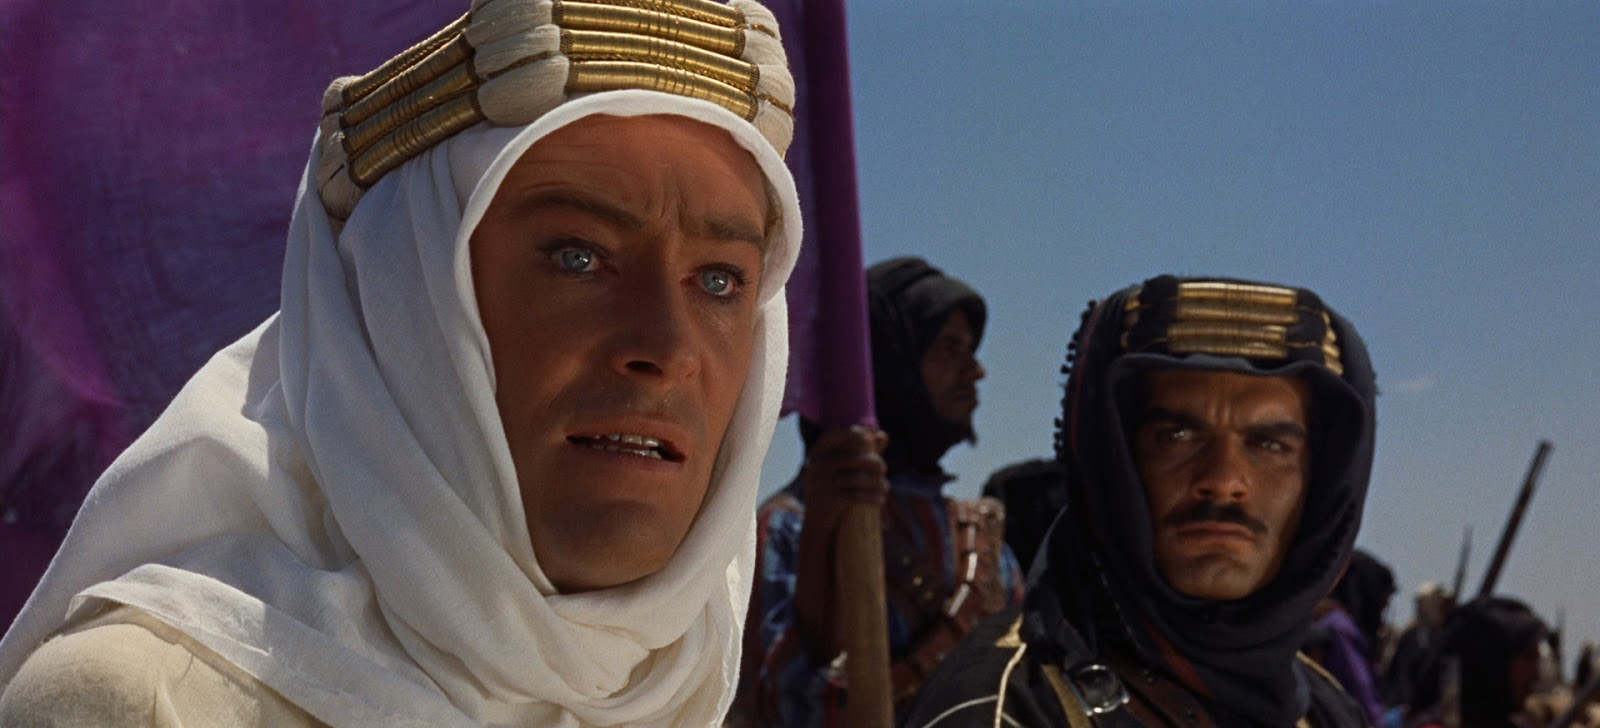 Lawrence of Arabia is absolutly stunning on the new 4K projector